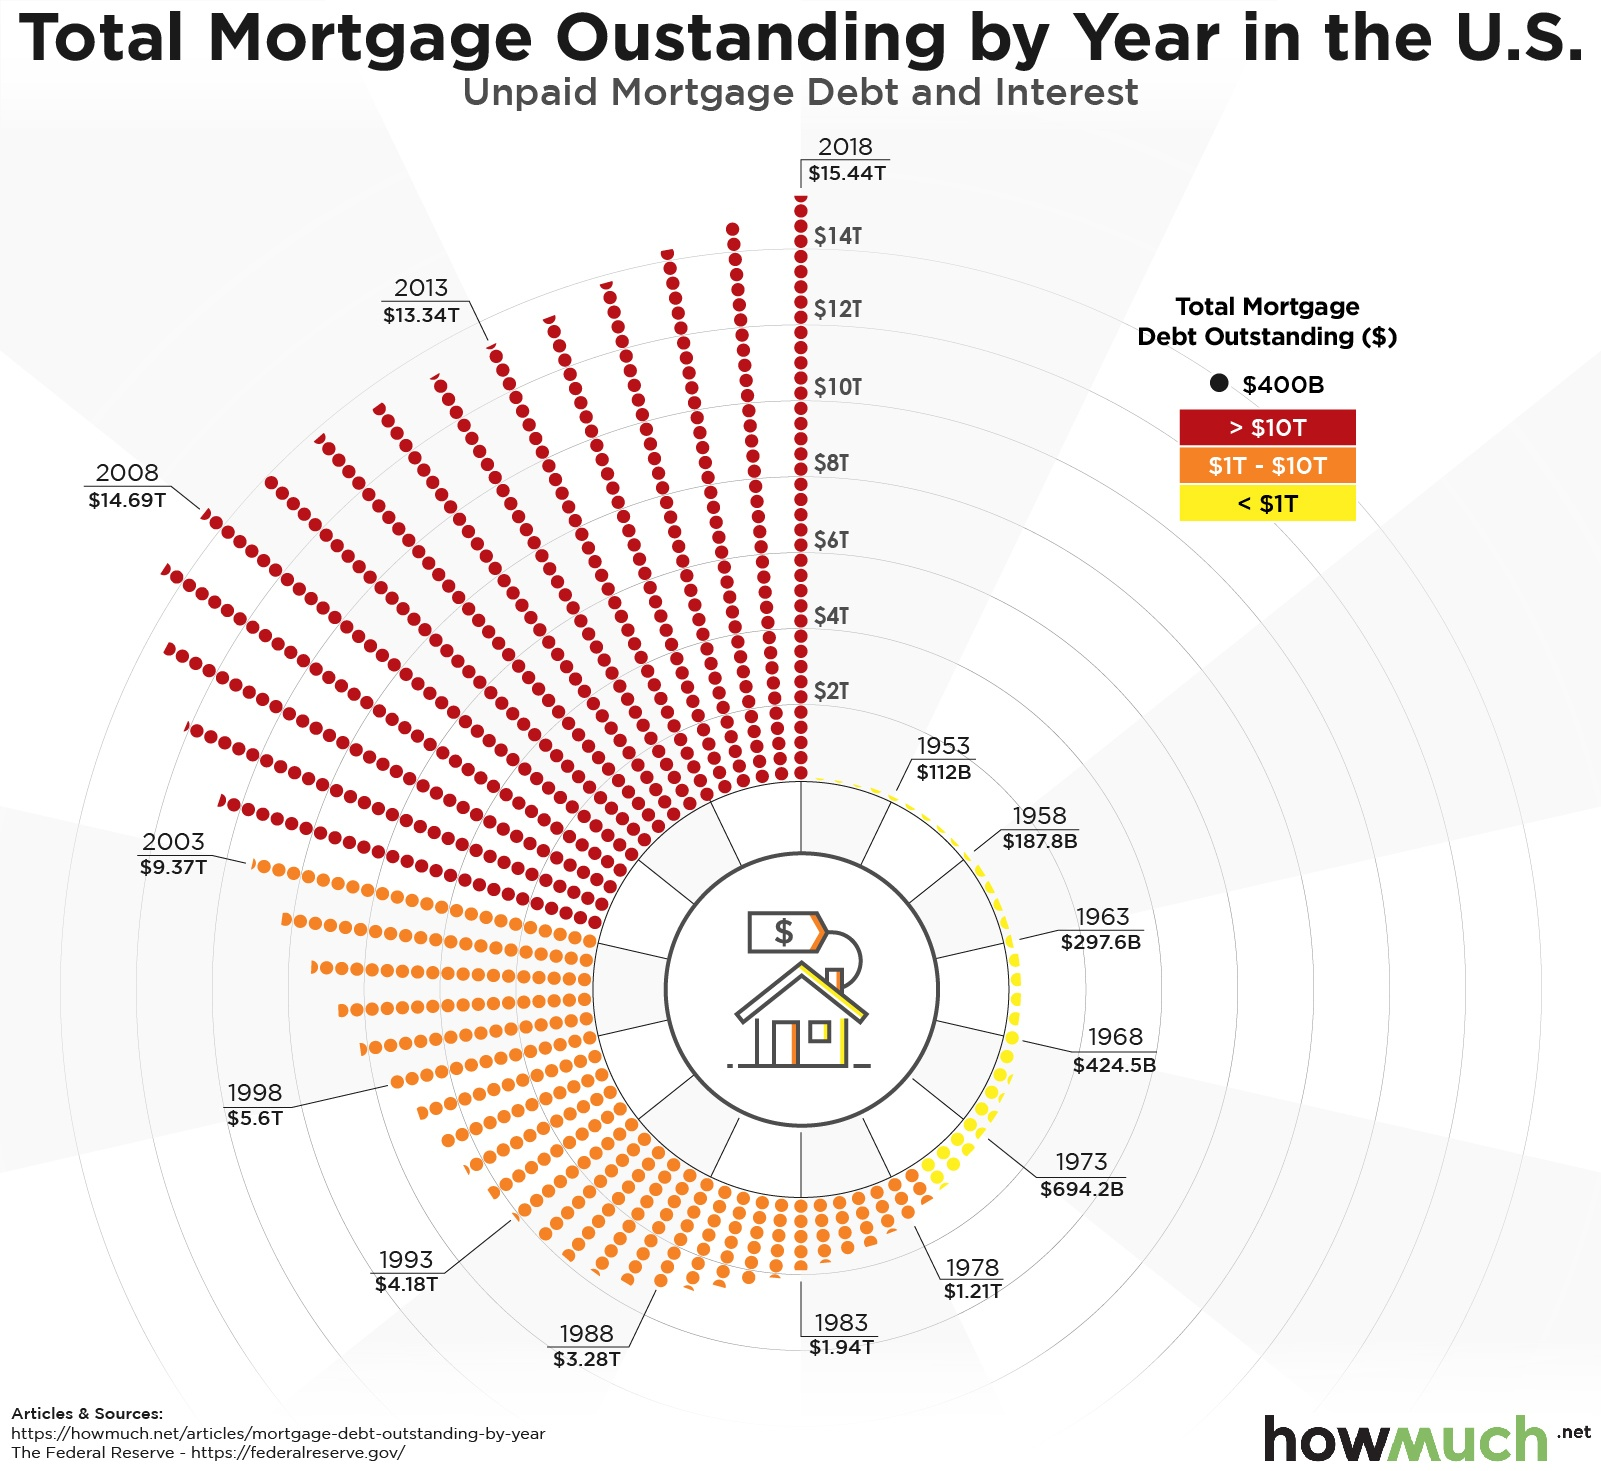 unpaid mortgage debt